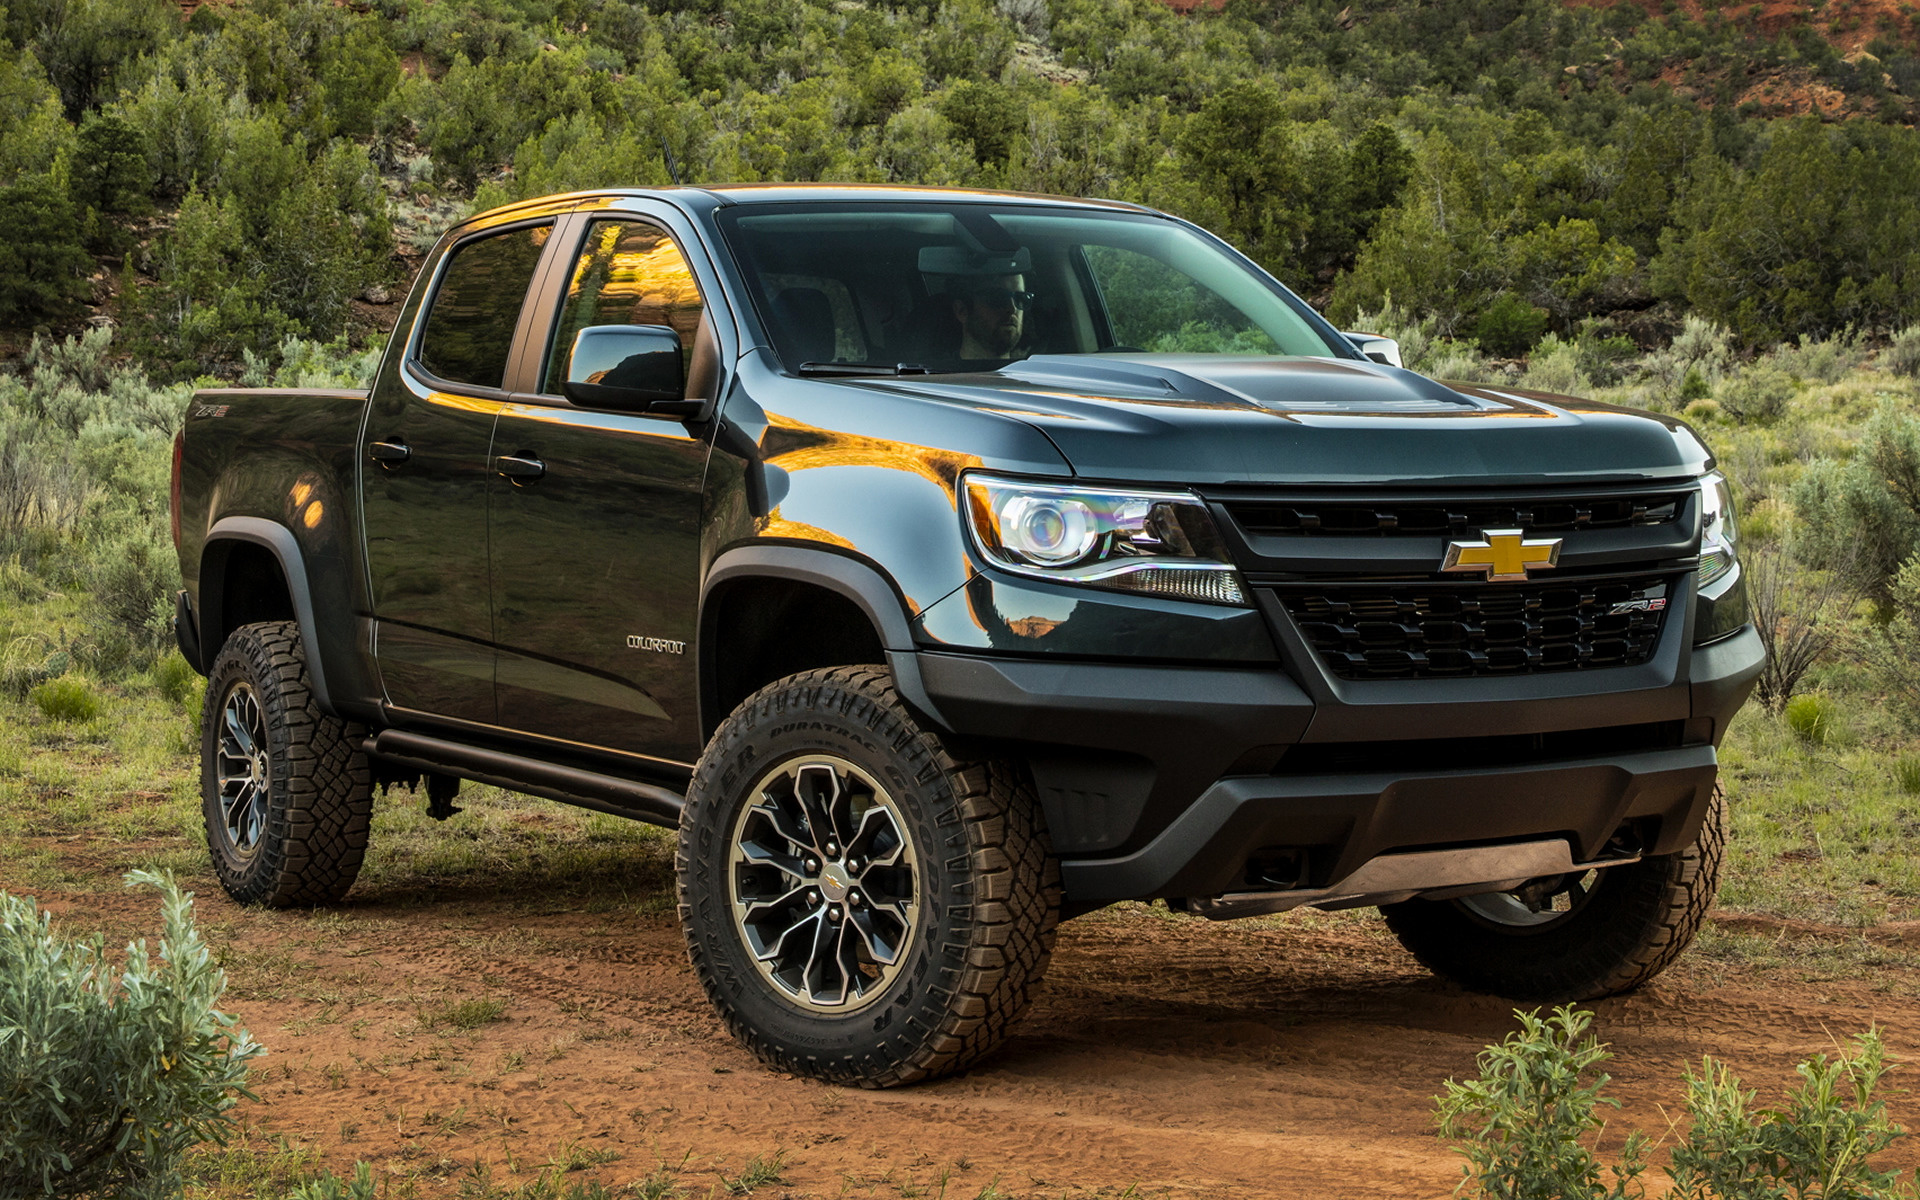 2017 Chevrolet Colorado Zr2 Crew Cab Wallpapers And Hd